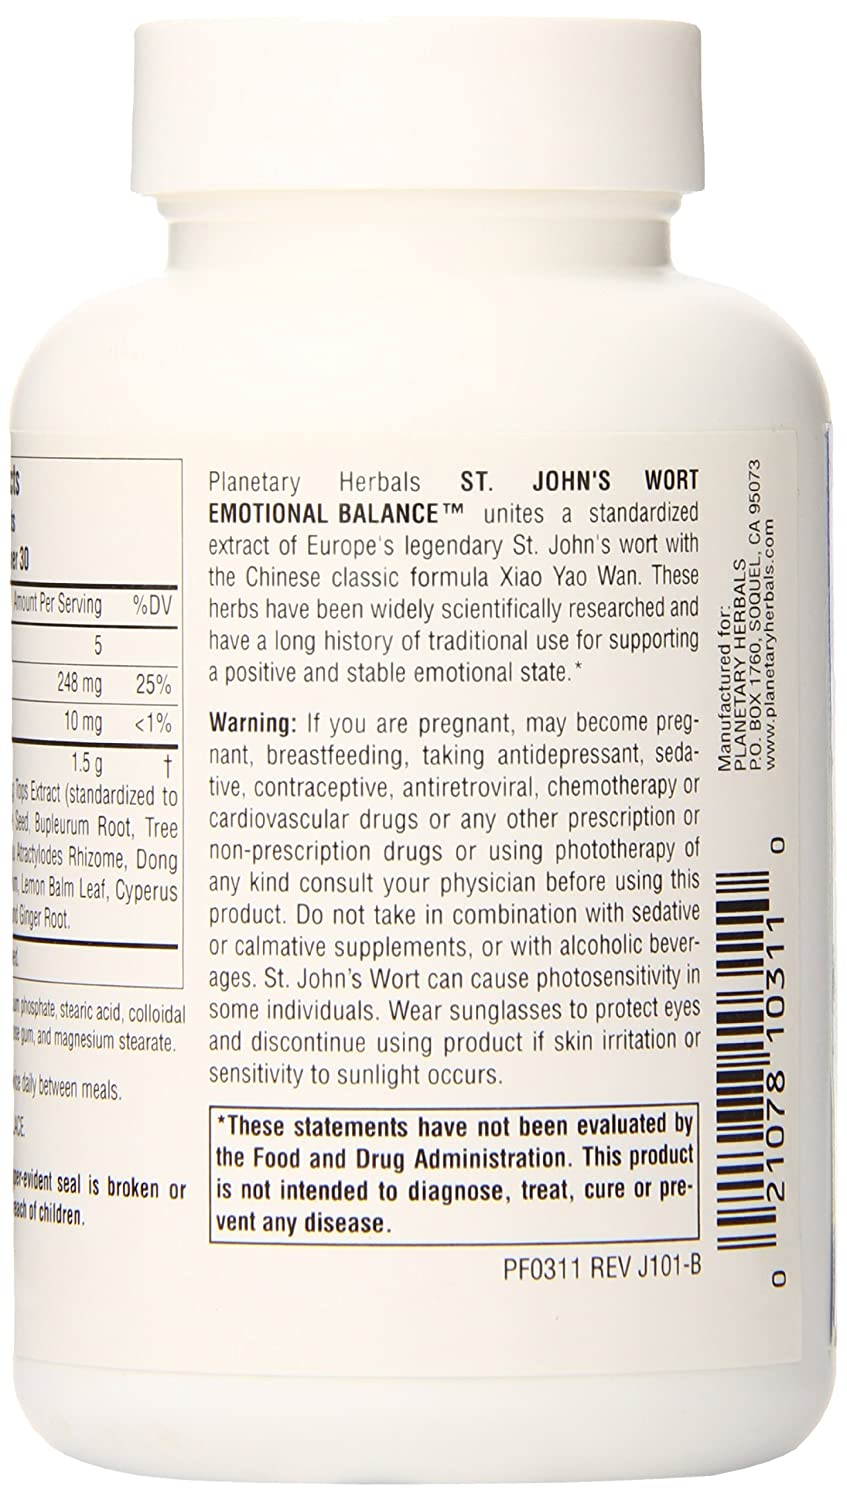 Planetary Herbals St. John s Wort Emotional Balance Tablets, 60 Count